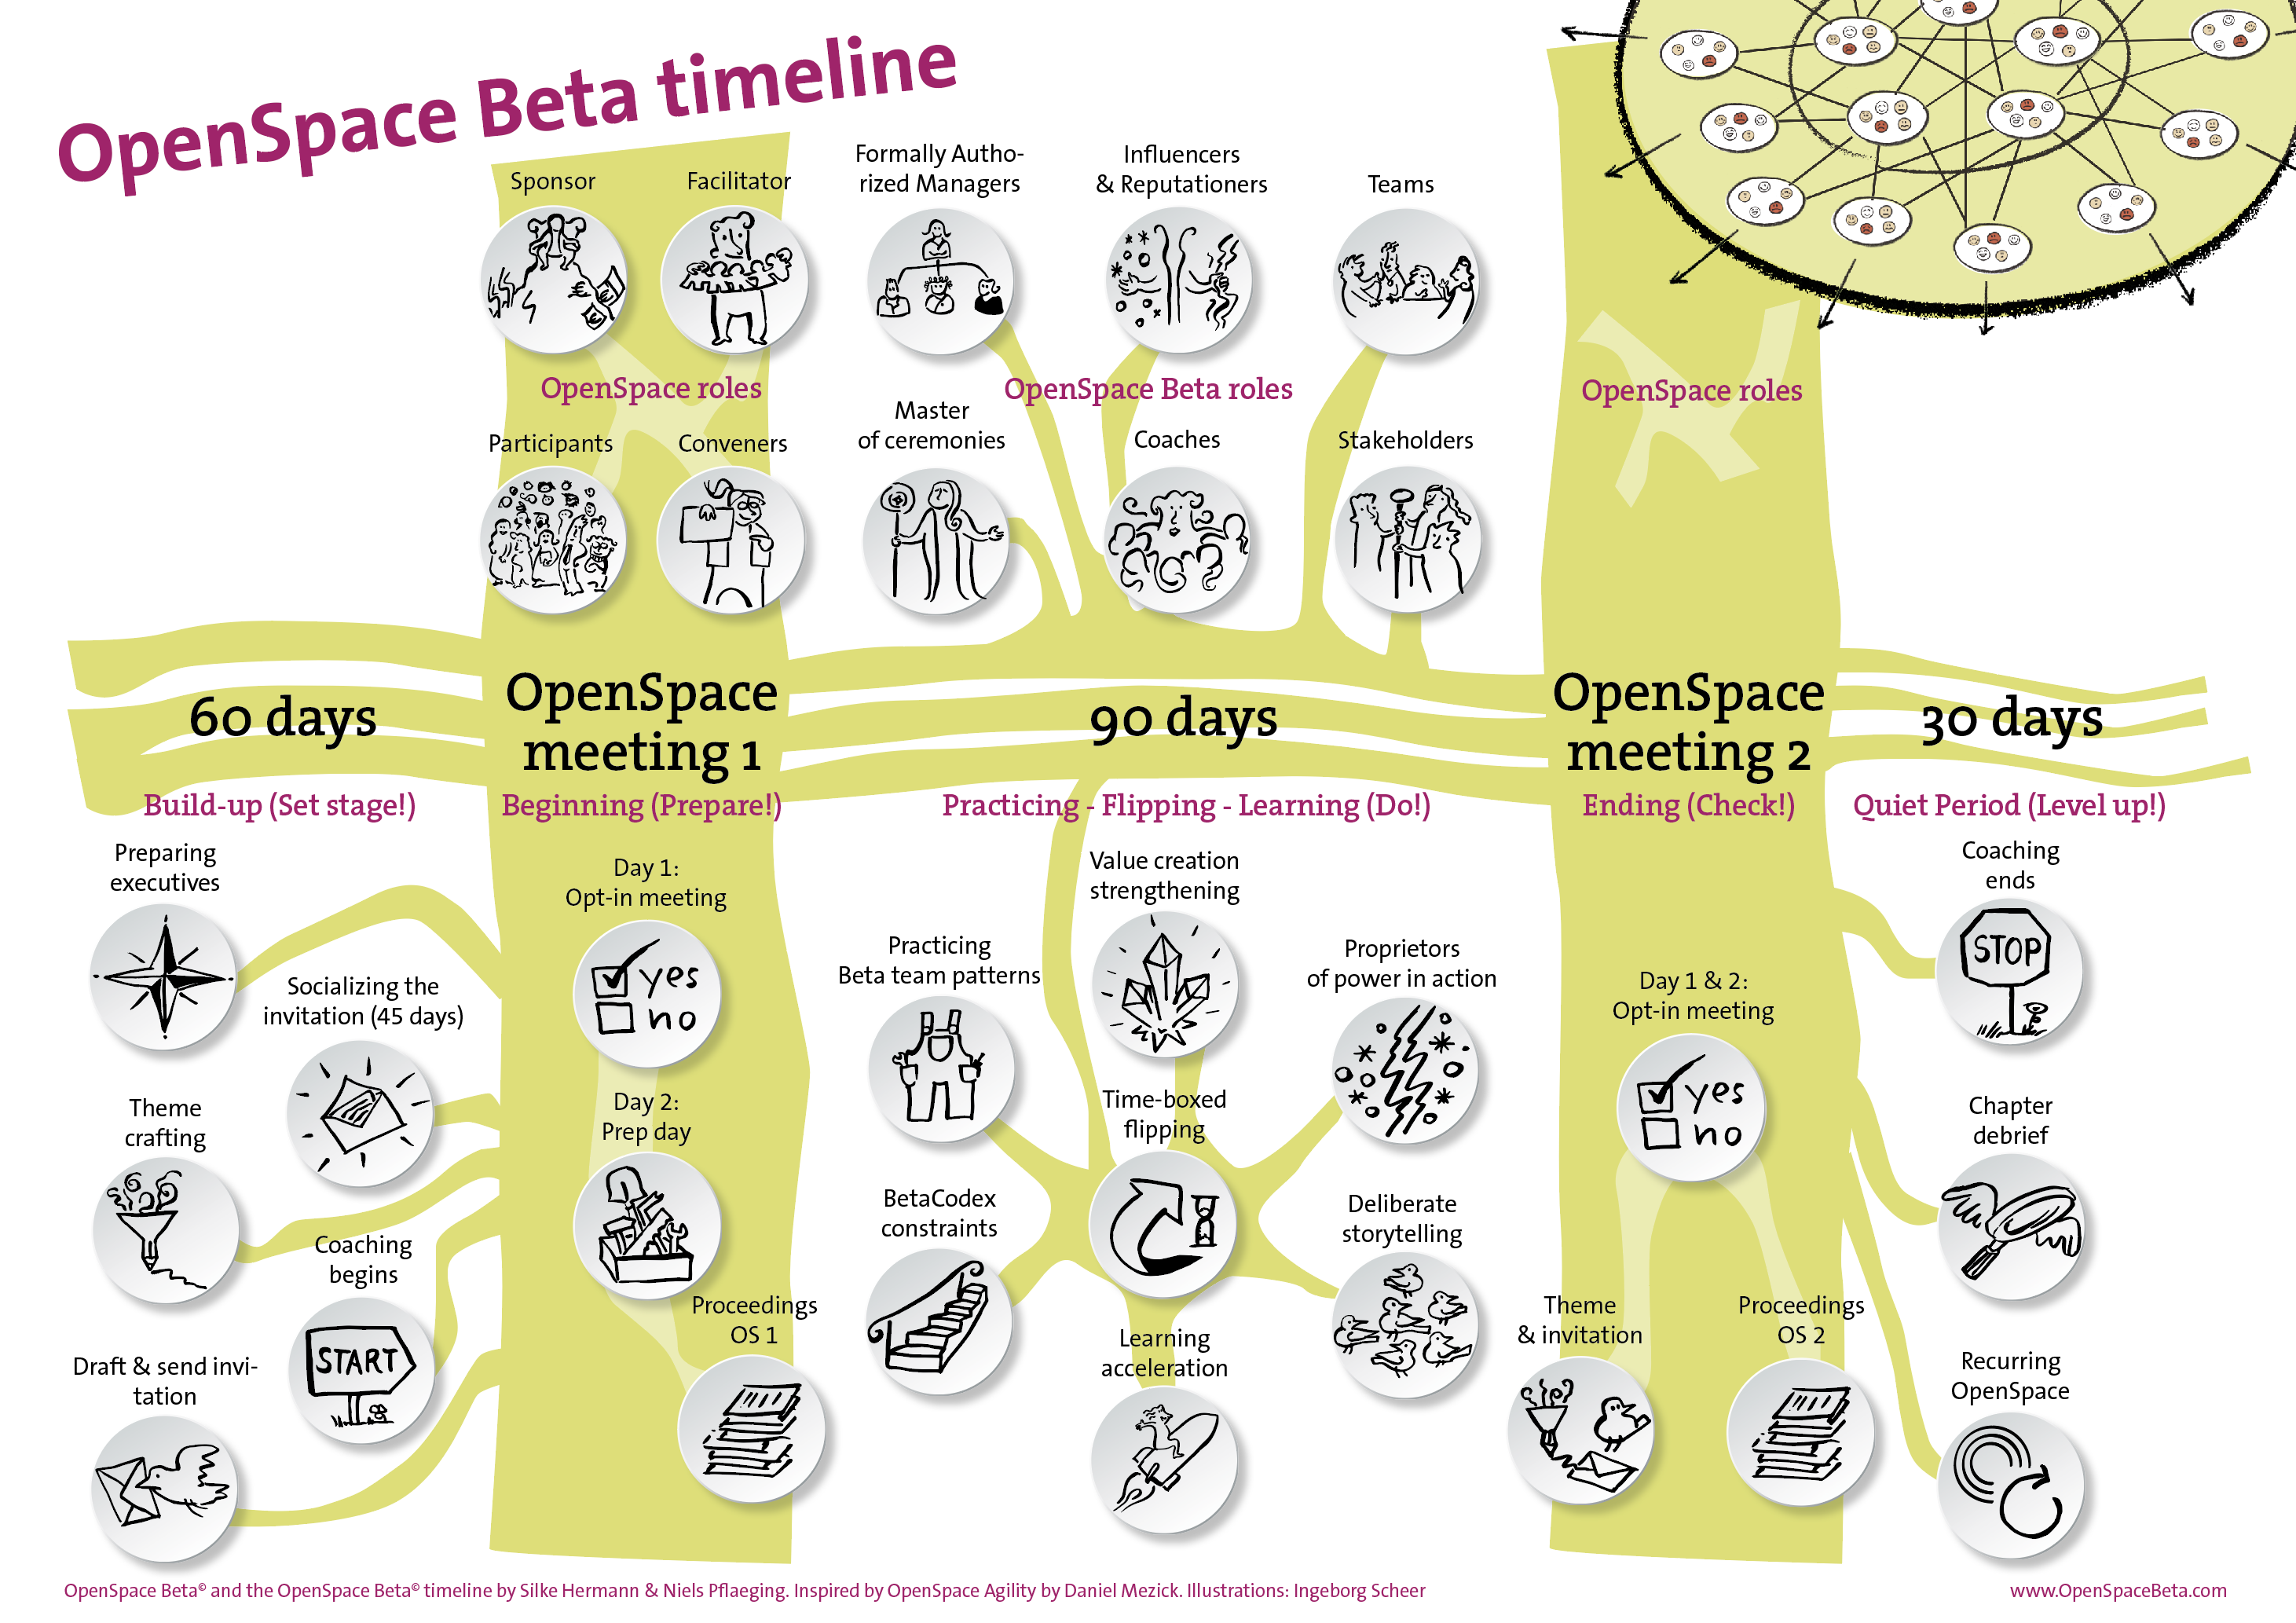 OpenSpace Beta timeline